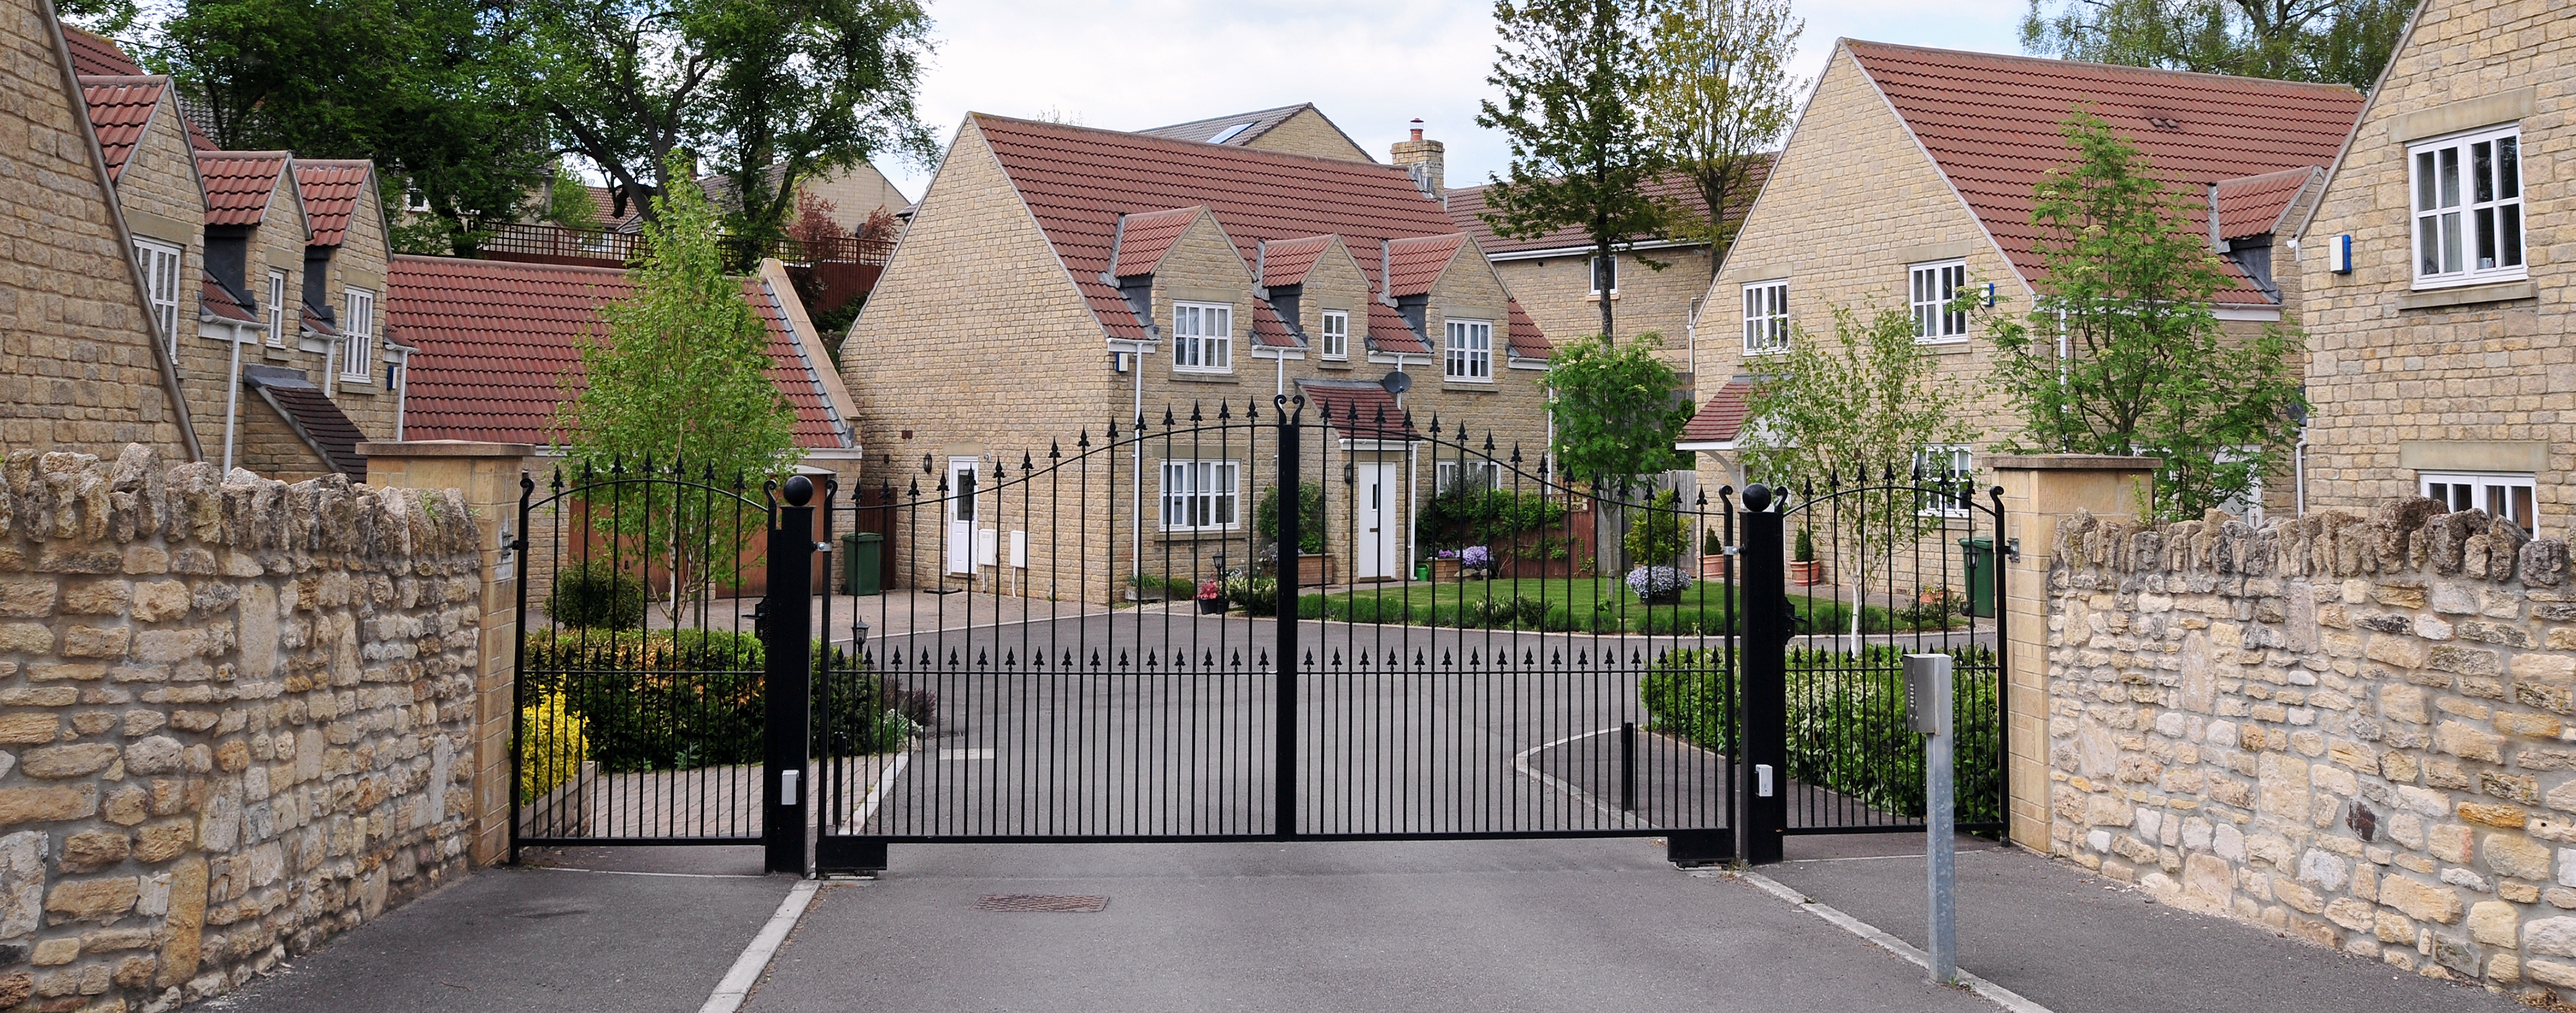 Secure Gated Community